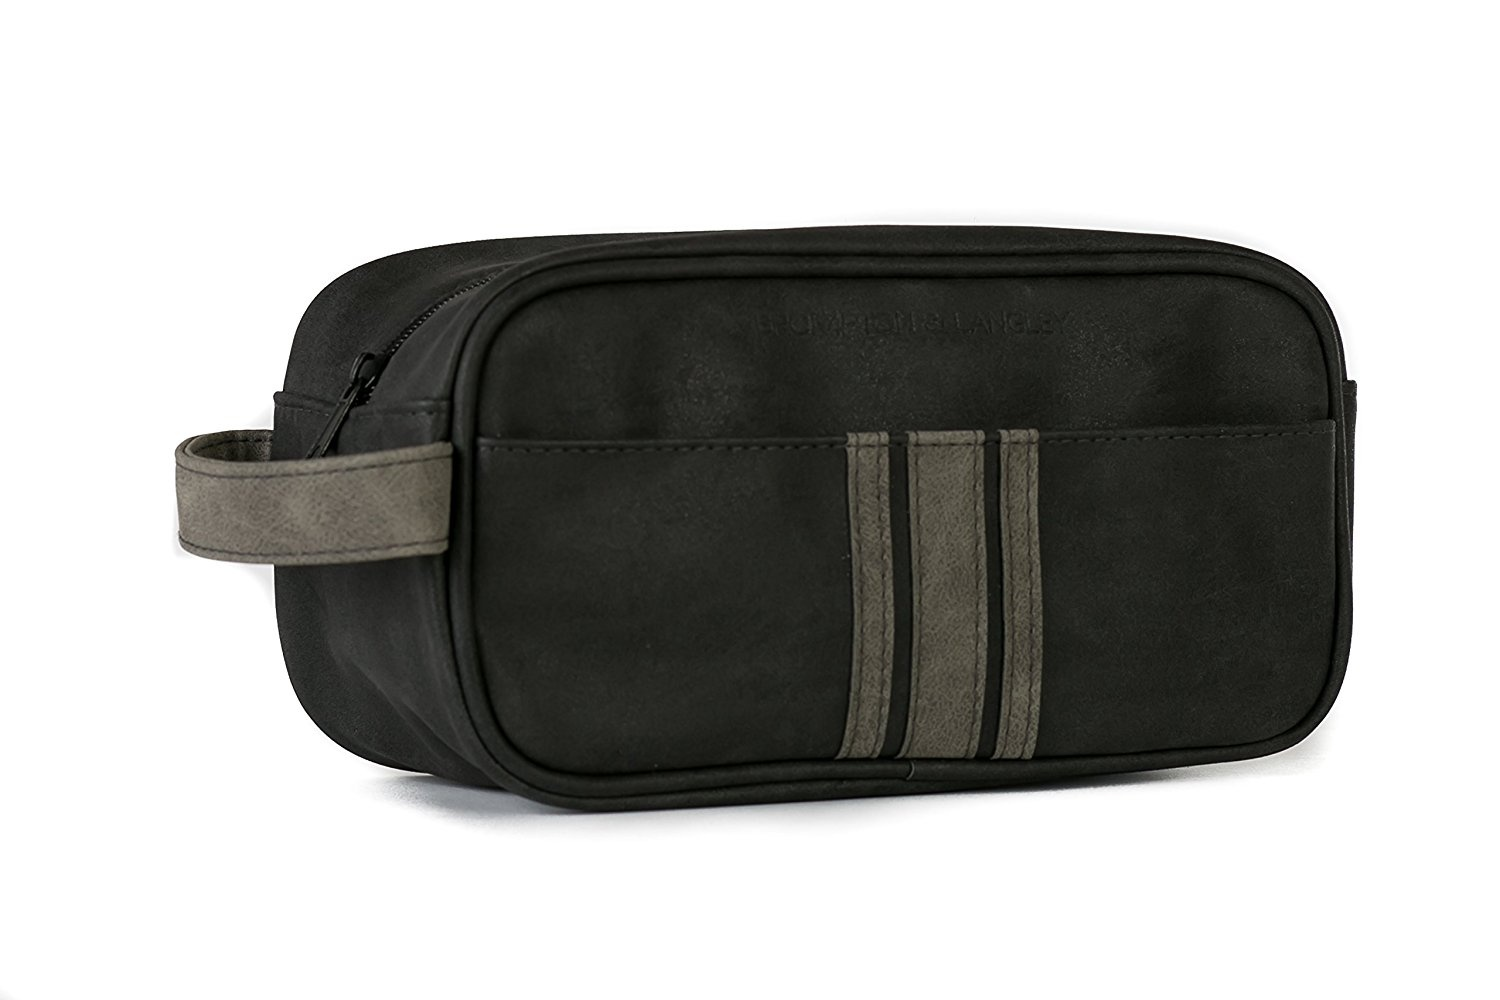 97564f39799f Danielle Creations Brompton and Langley Black and Charcoal, Small Wash bag